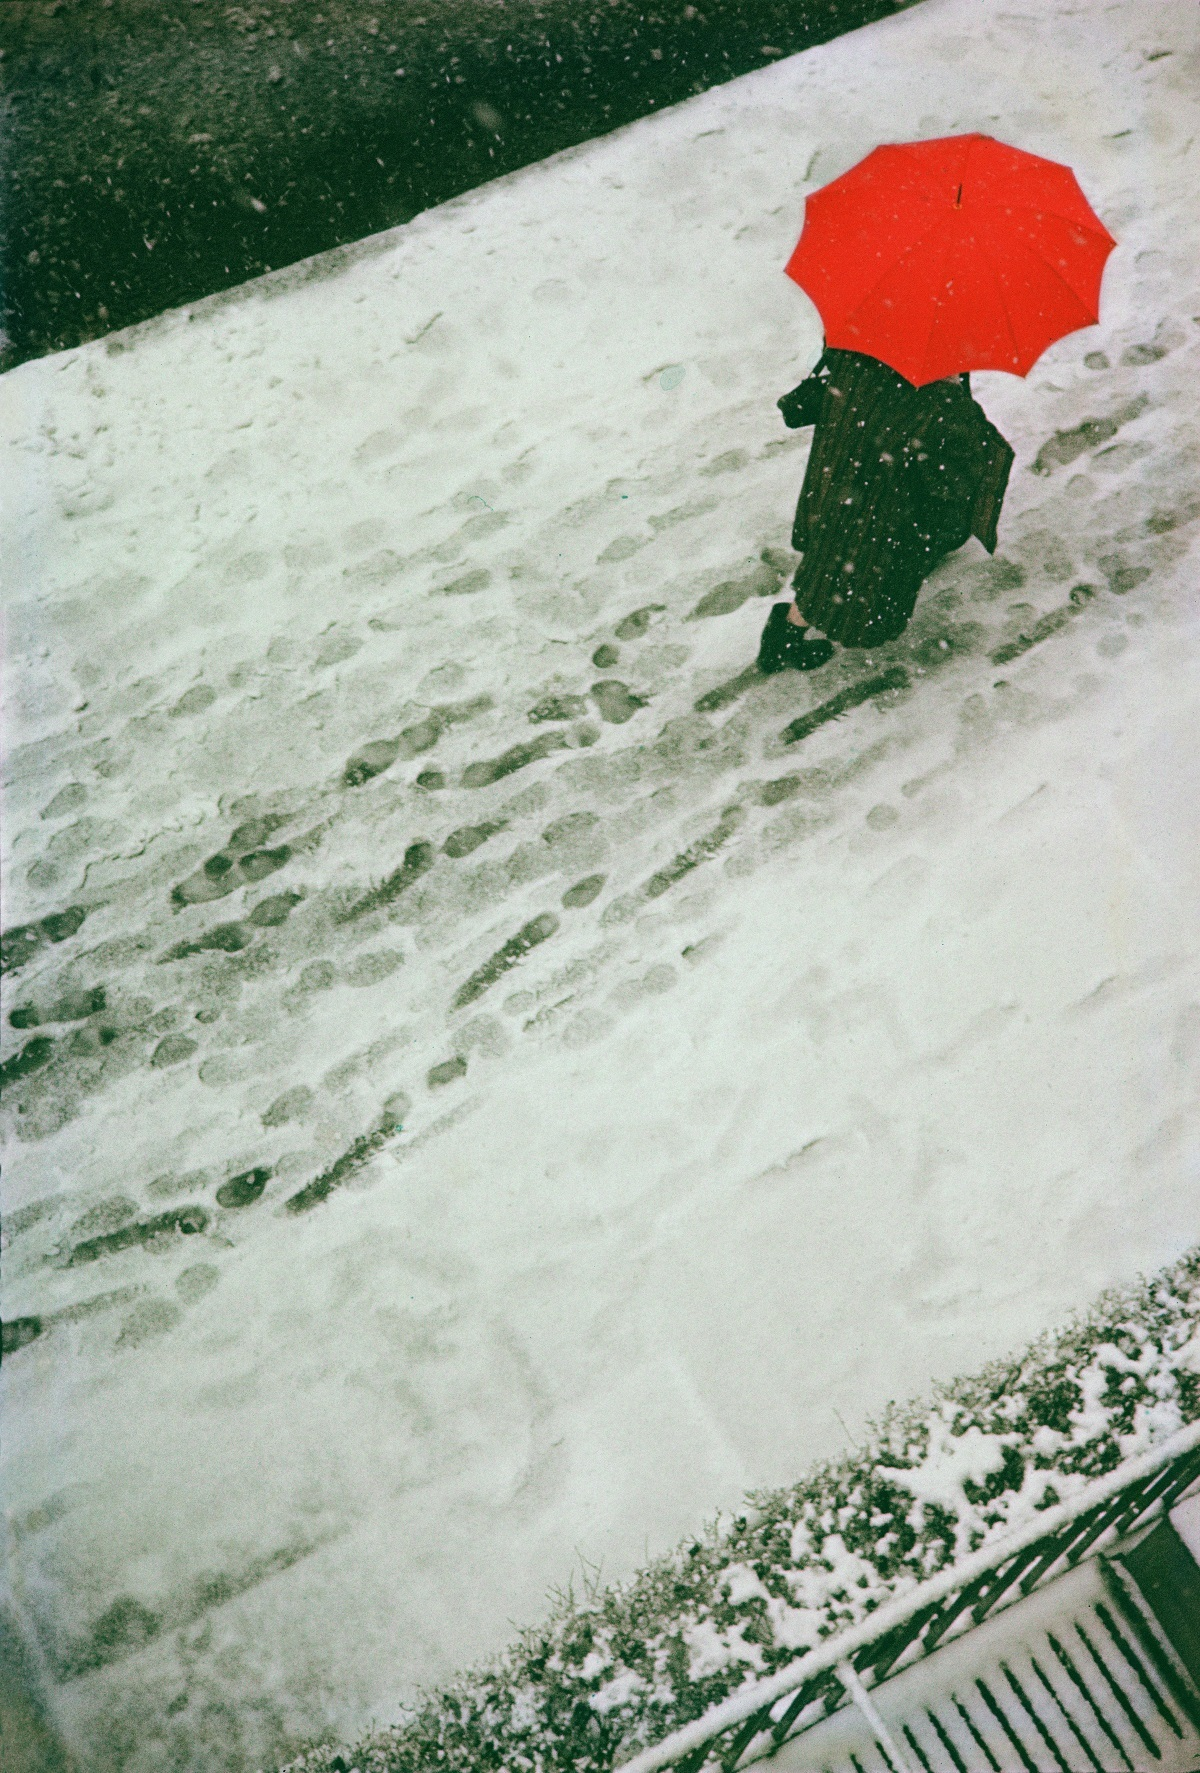 ソール・ライター ≪Footprints≫ 1950年 ⒸSaul Leiter Estate